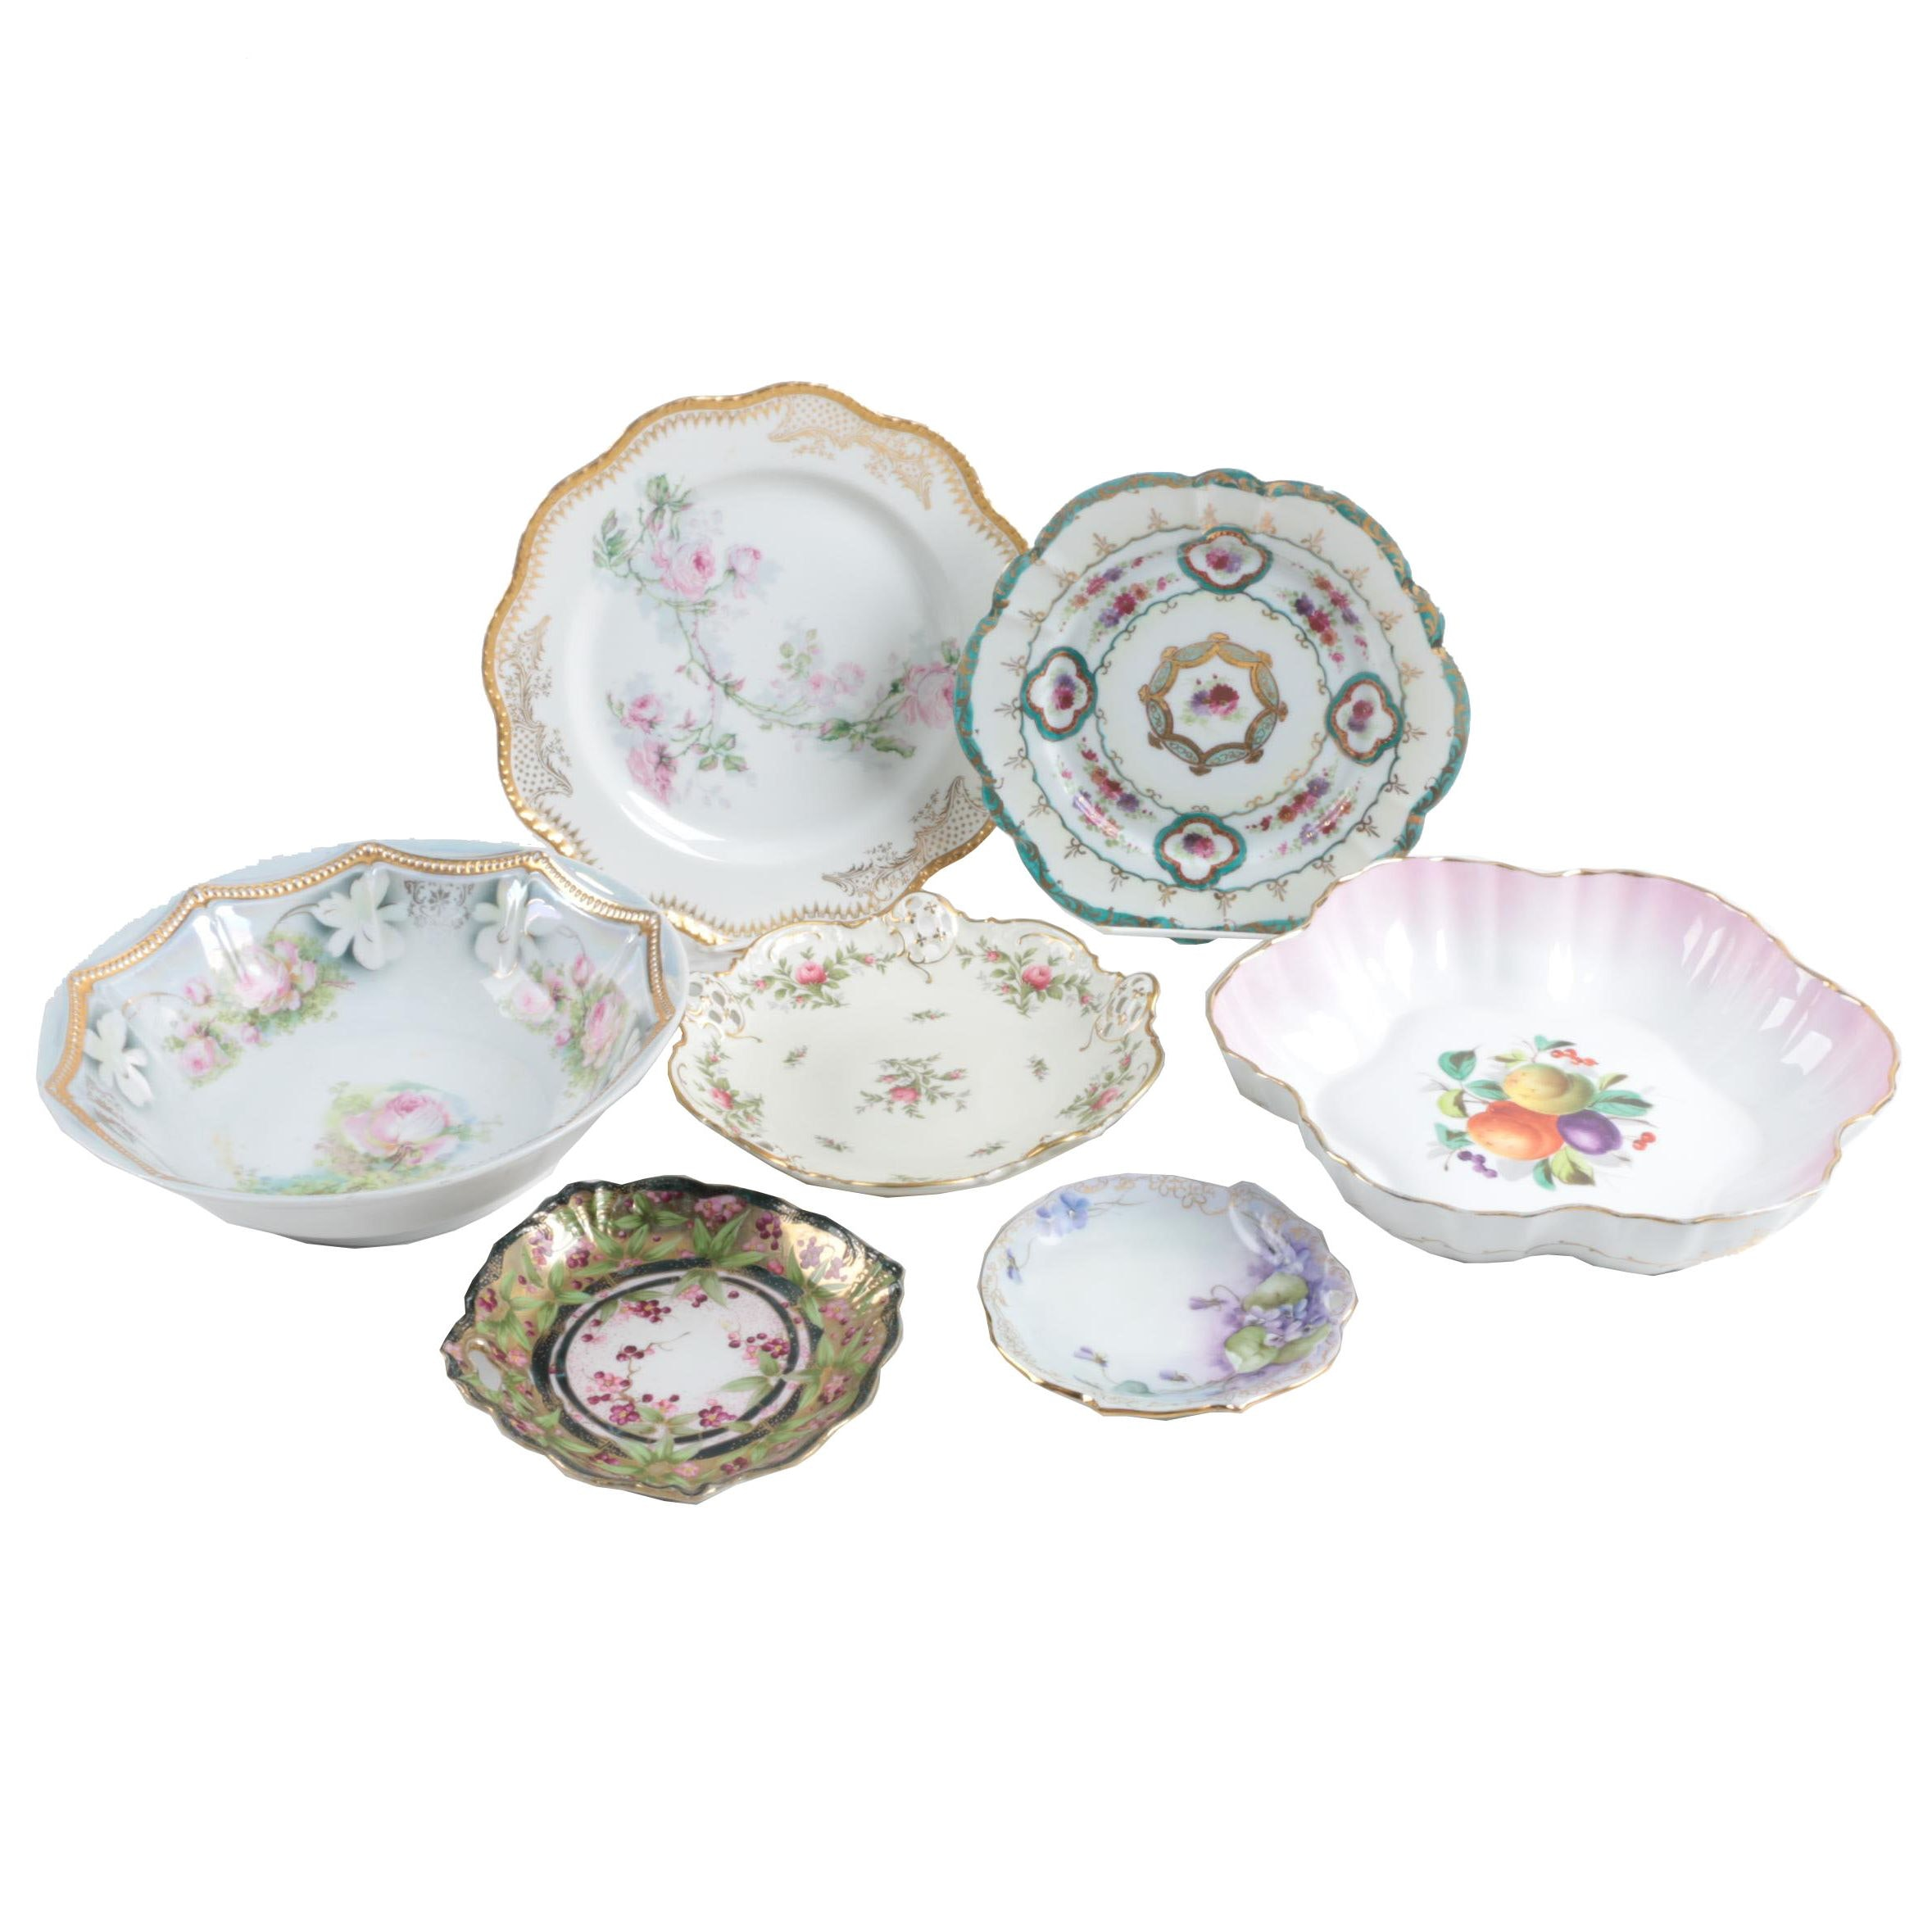 Assortment of Hand-painted Porcelain Including Nippon